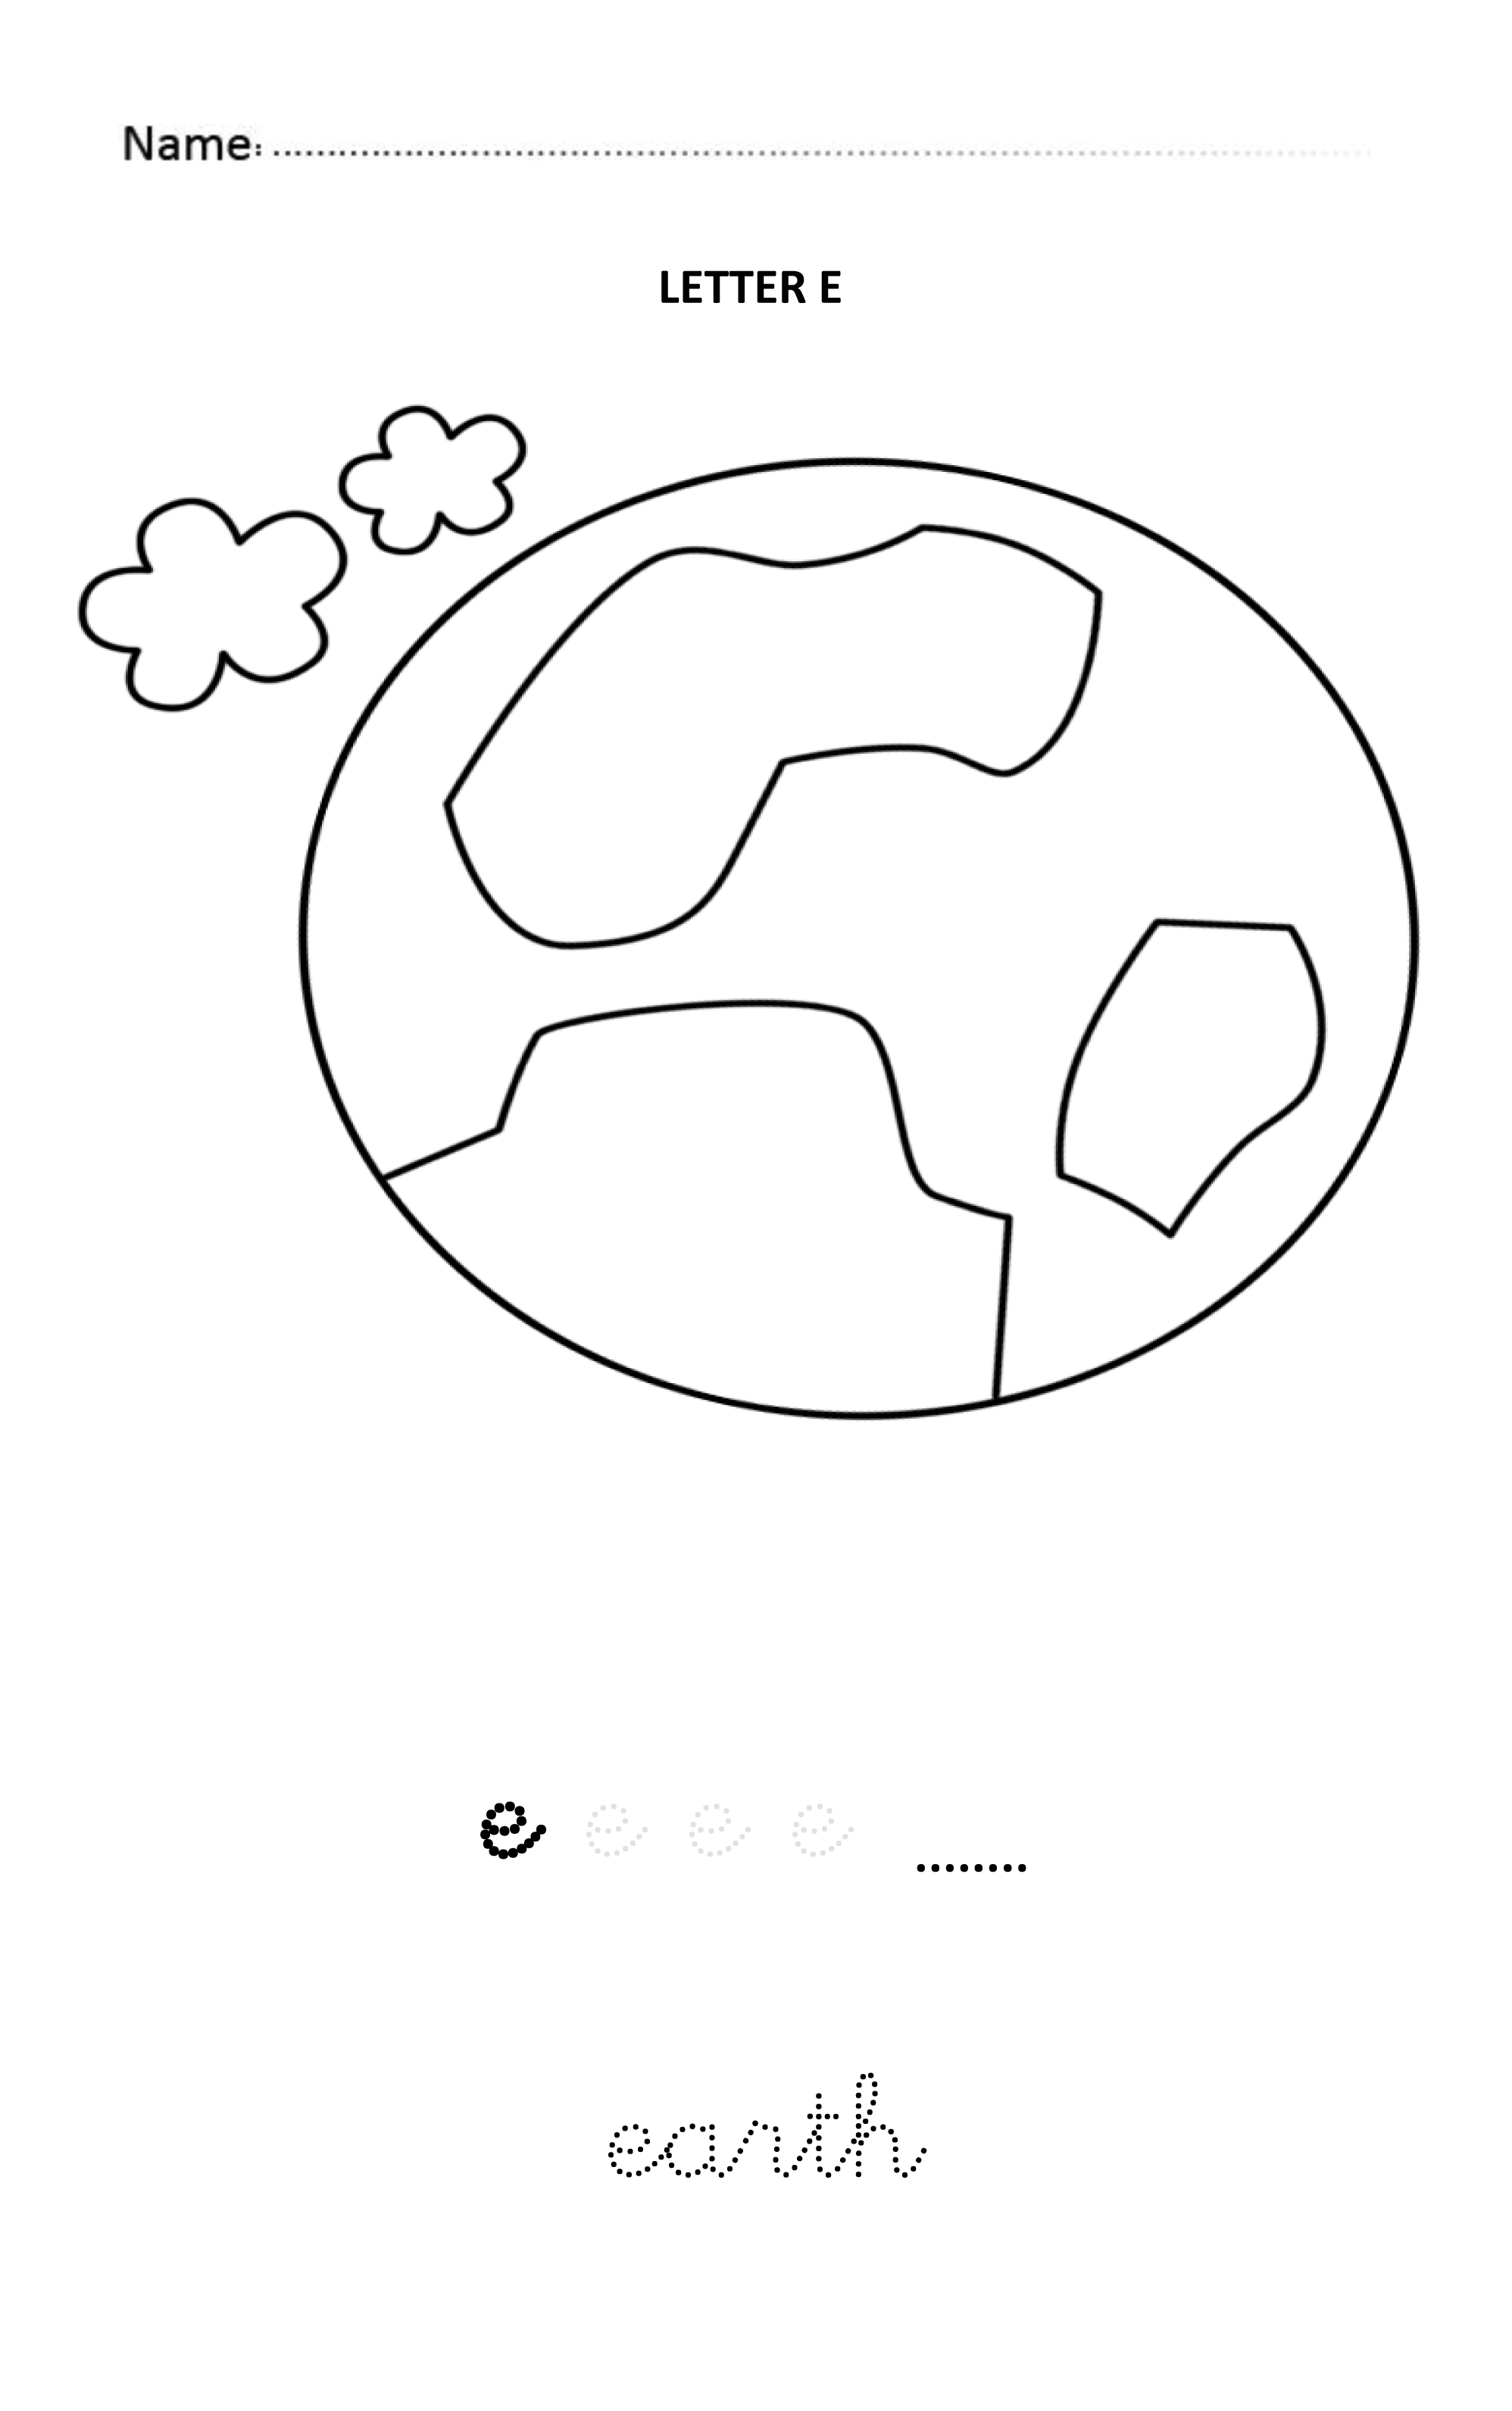 Letter E Easy And Visual Colouring Worksheet For Early